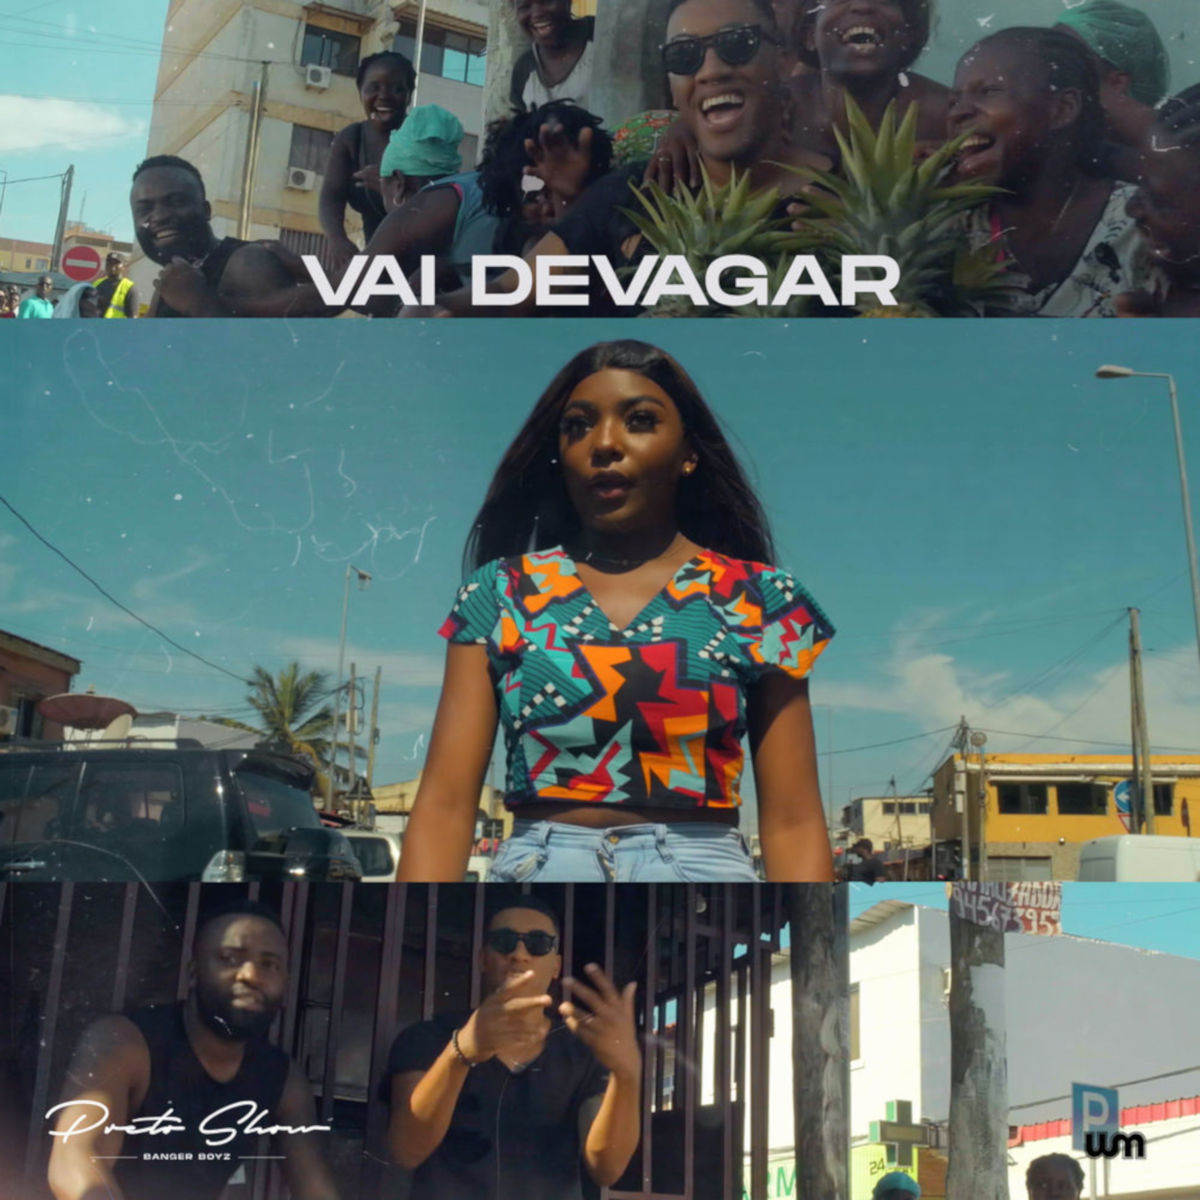 Preto Show feat. Anselmo Ralph – Vai Devagar (Download mp3 2020)